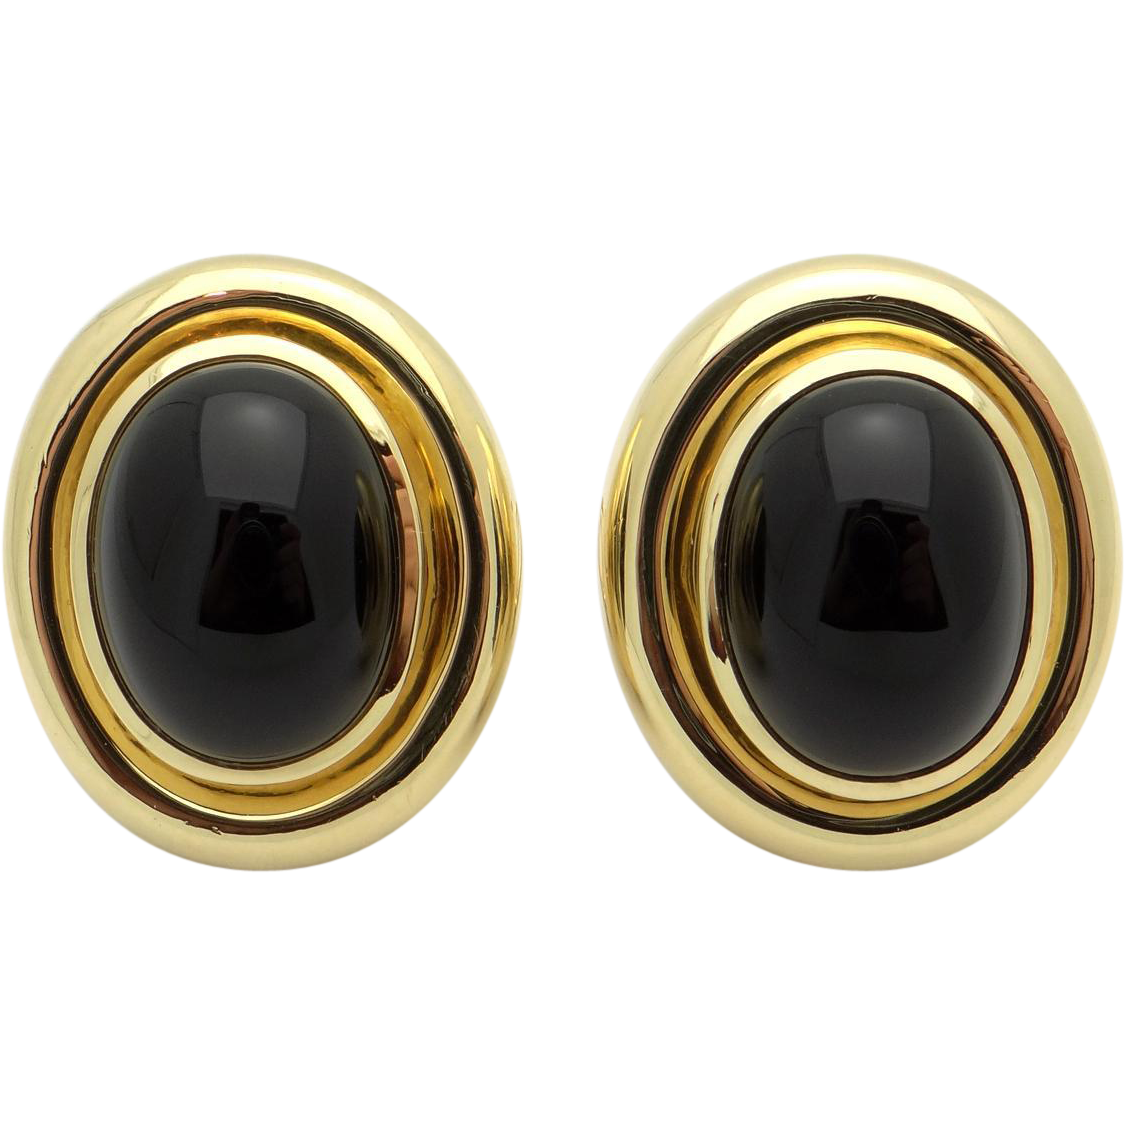 Tiffany Co By Paloma Pico 18k Yellow Gold Oval Cut Cabochon Onyx Antique Jewelry Line Ruby Lane